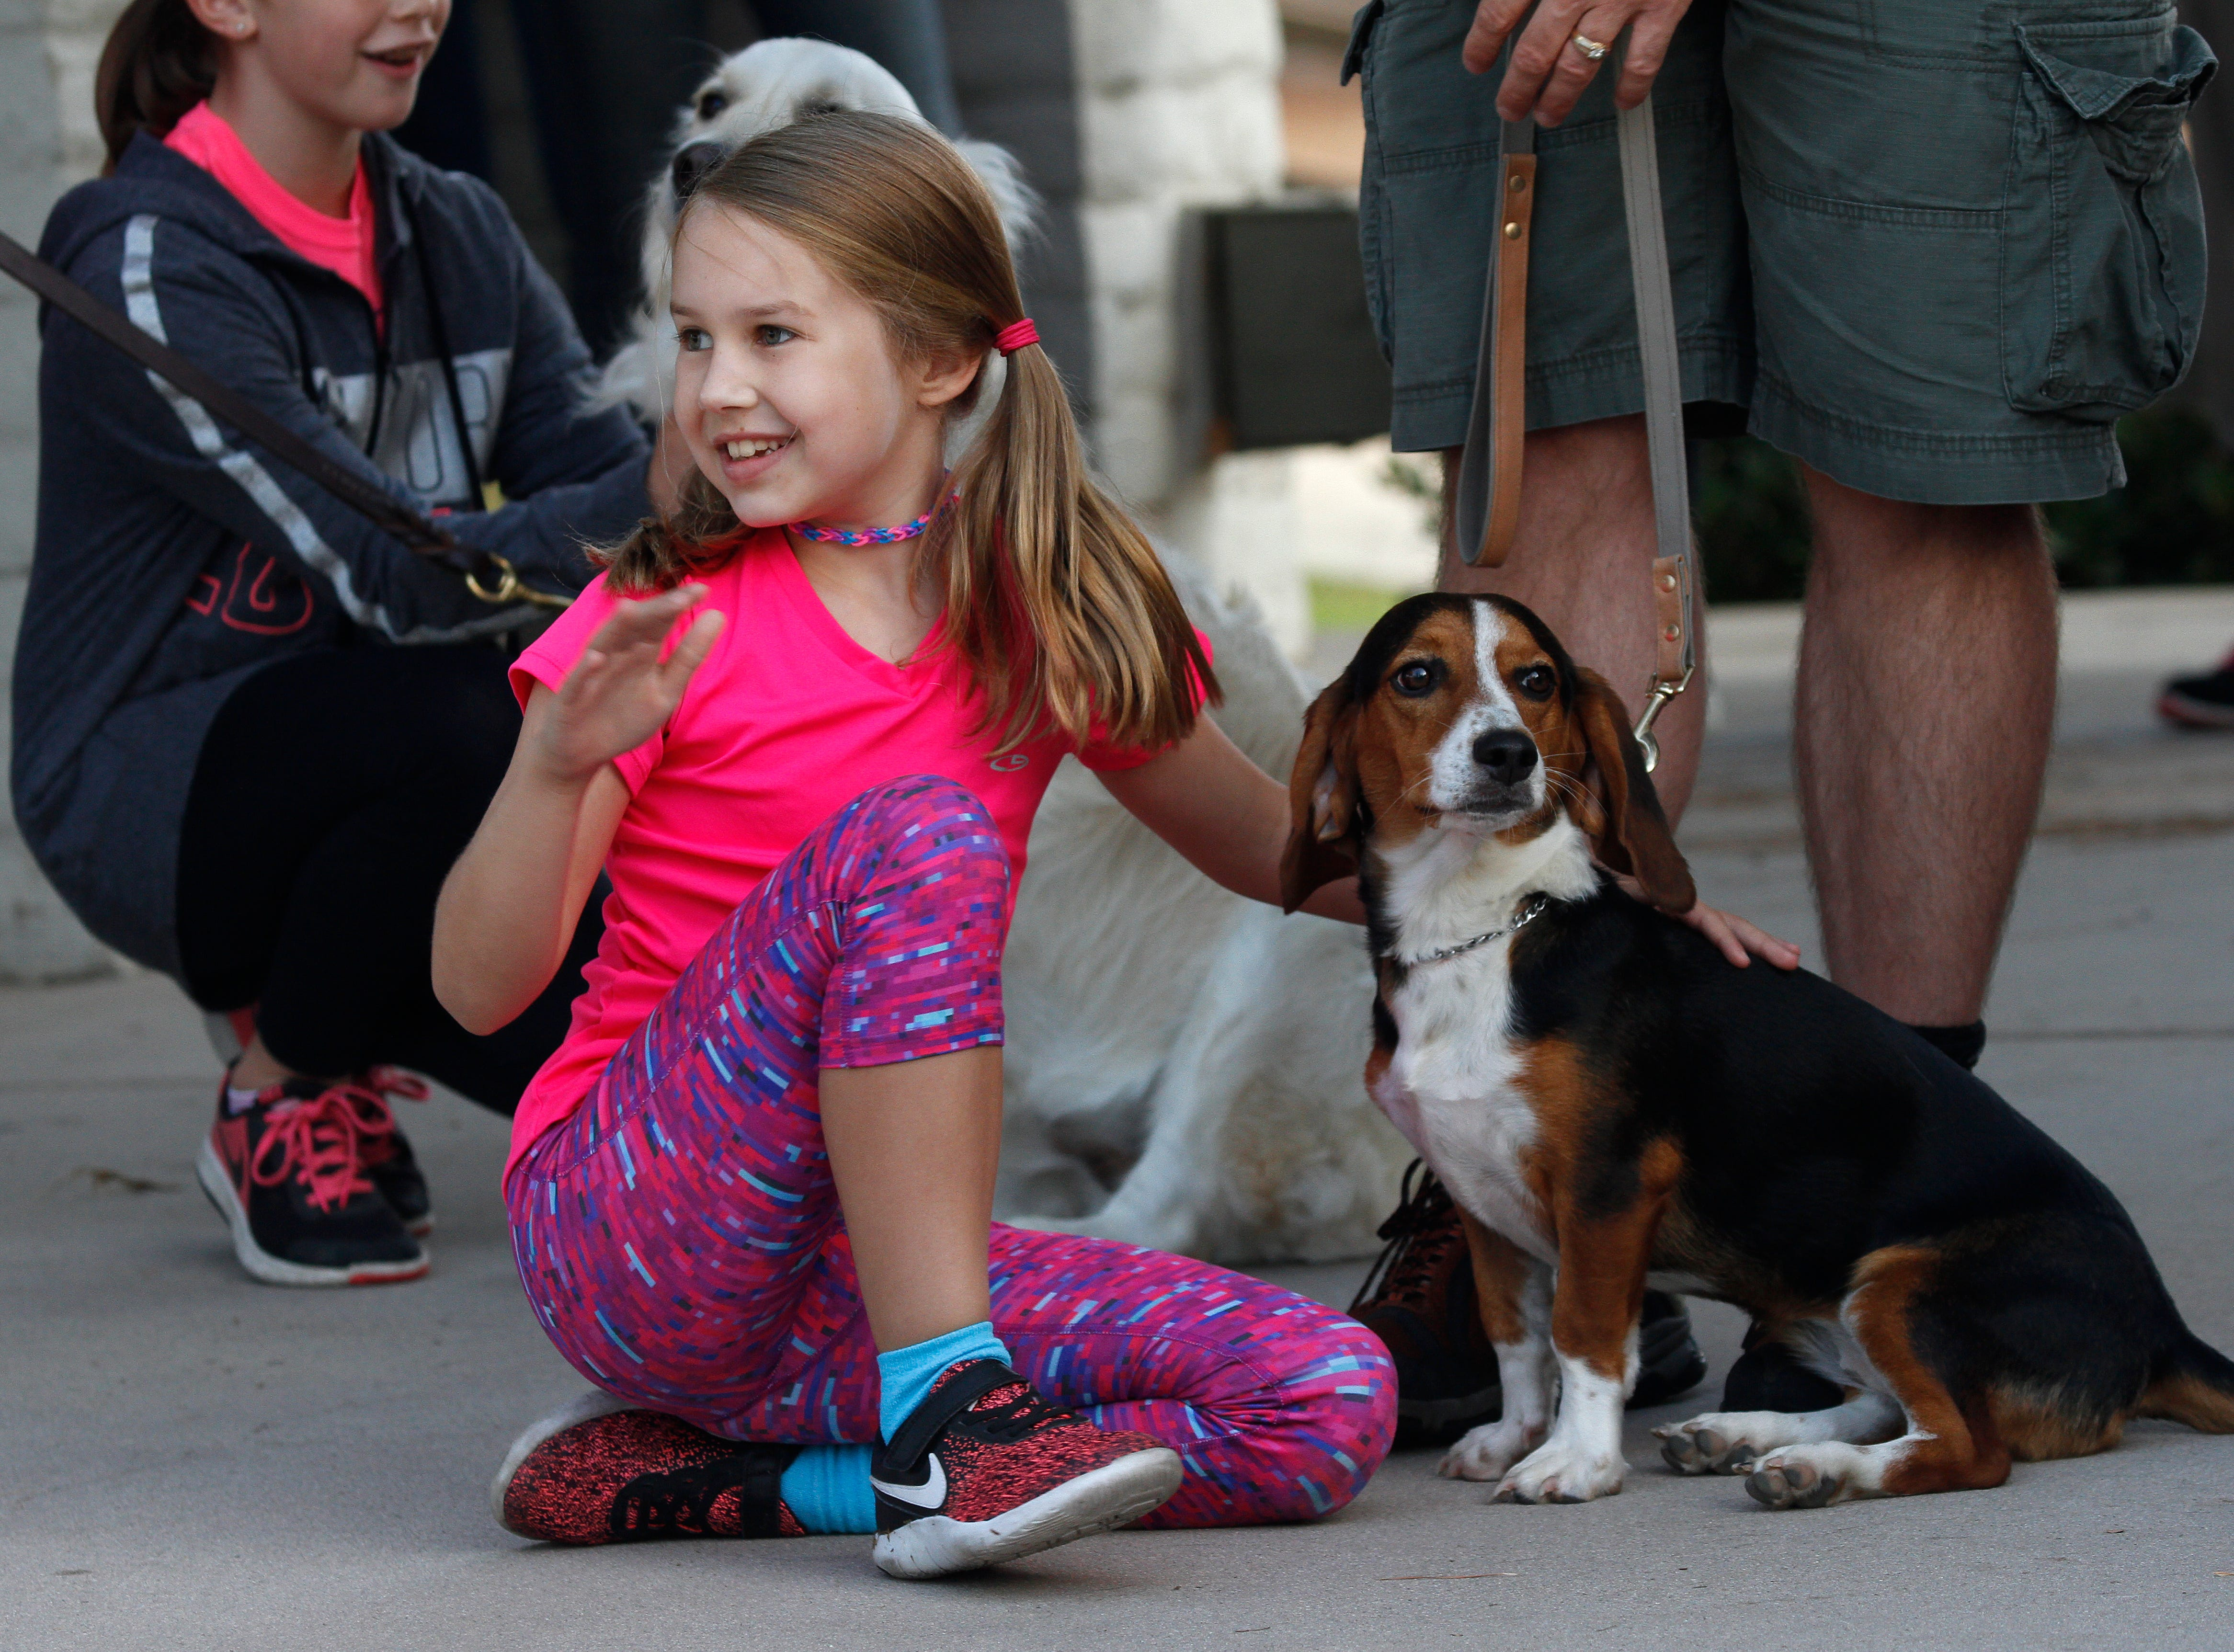 Morgan Dooley, 8, sits with her beagle Shasta as she awaits her dog's turn to perform a trick on stage Saturday during the 13th annual Family Fun Wag 'n' Walk, a fundraiser for Animal Rescue Volunteers in Simi Valley.